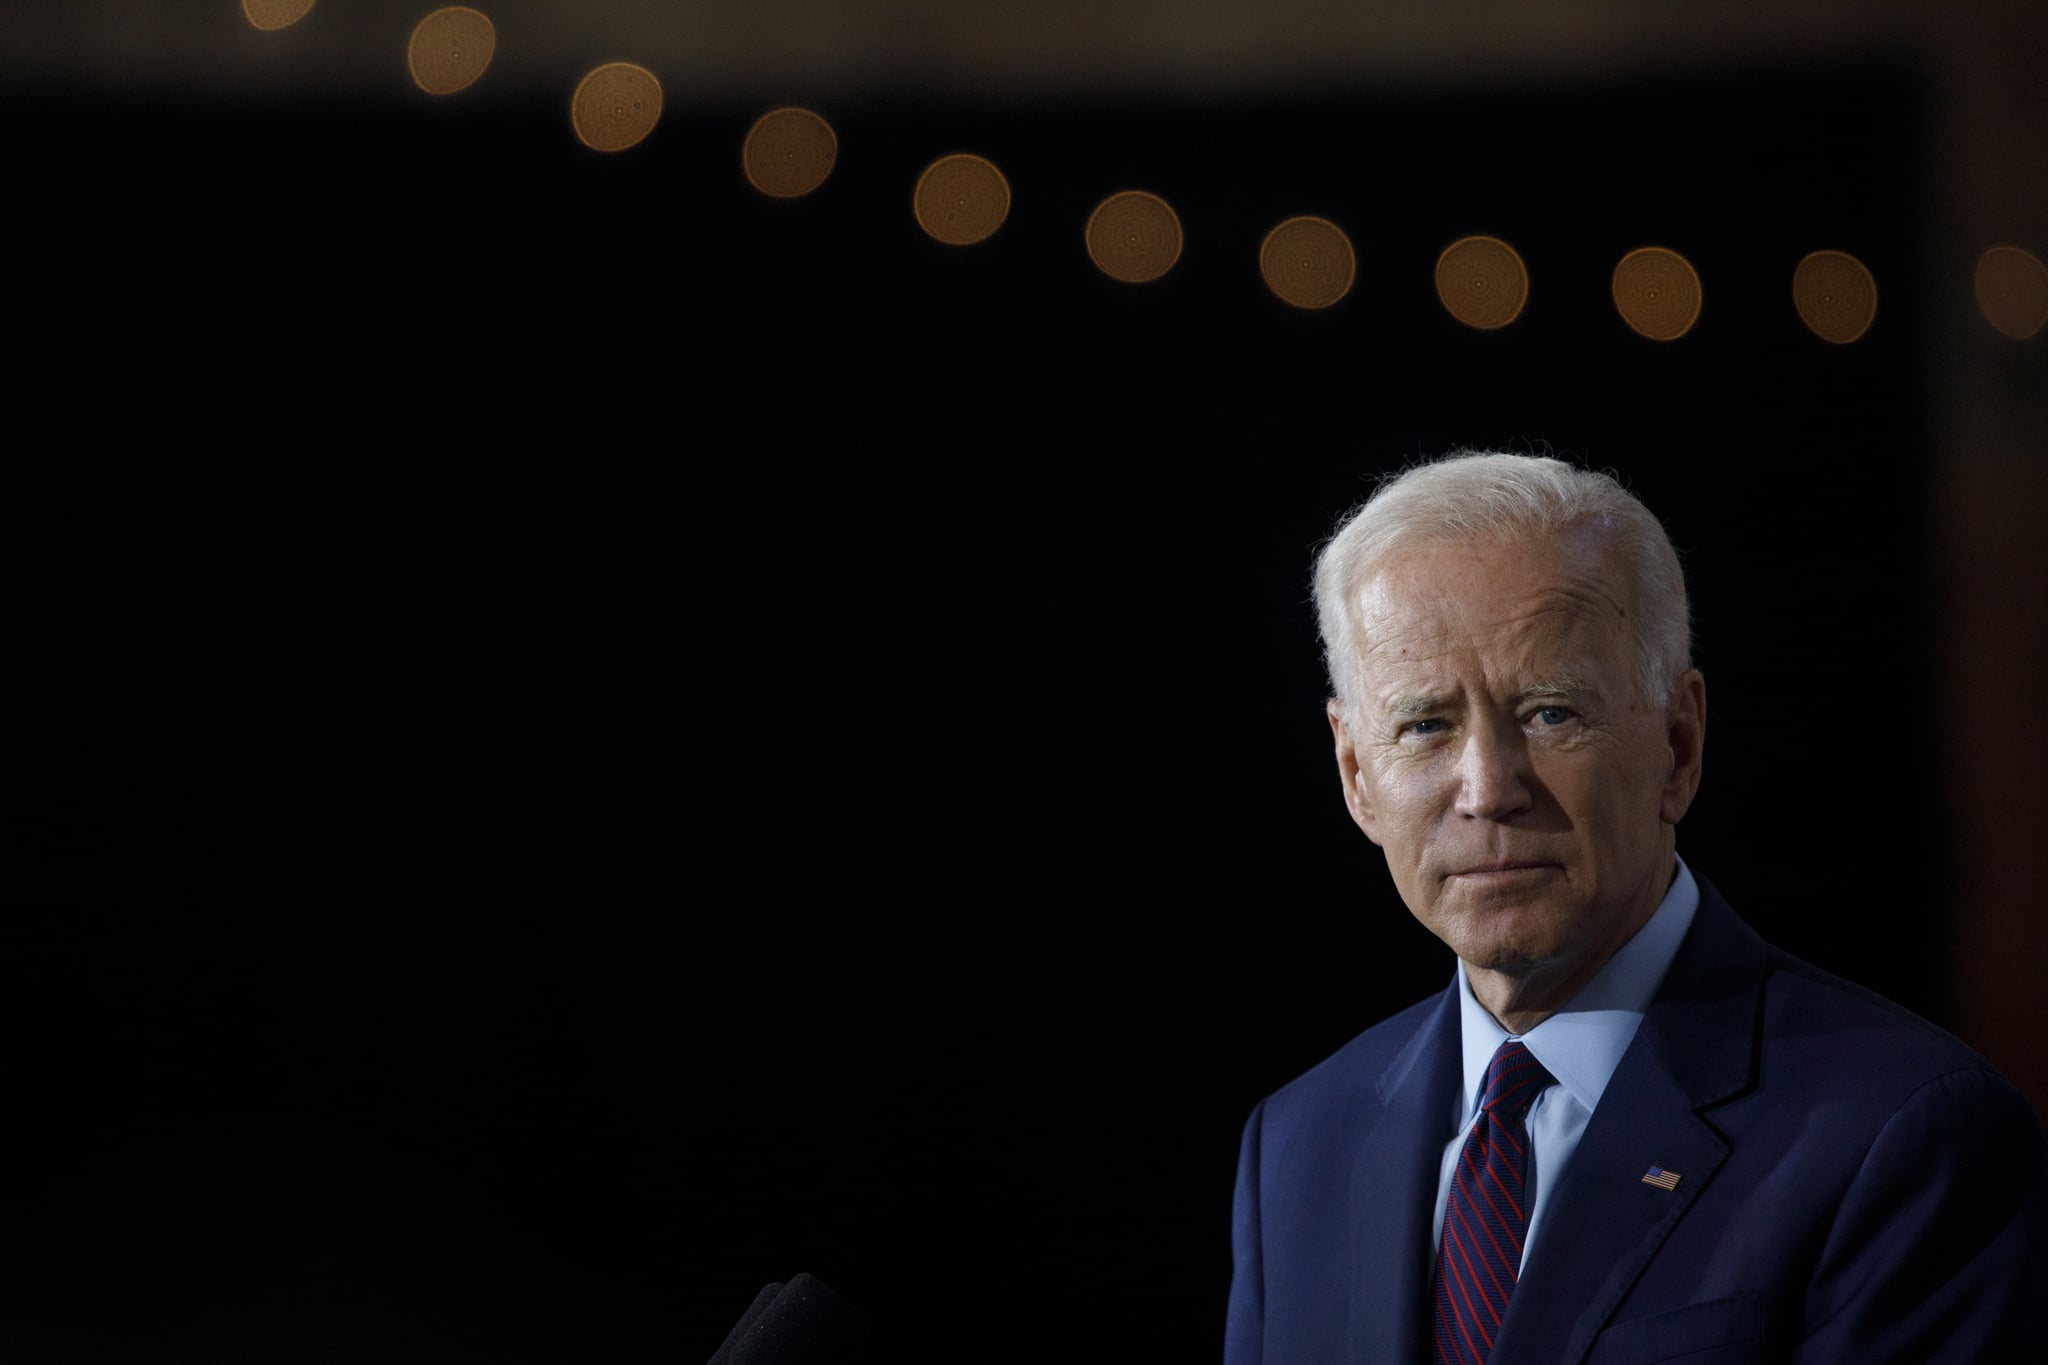 BURLINGTON, IA - AUGUST 07: Democratic presidential candidate and former U.S. Vice President Joe Biden delivers remarks about White Nationalism during a campaign press conference on August 7, 2019 in Burlington, Iowa. (Photo by Tom Brenner/Getty Images)